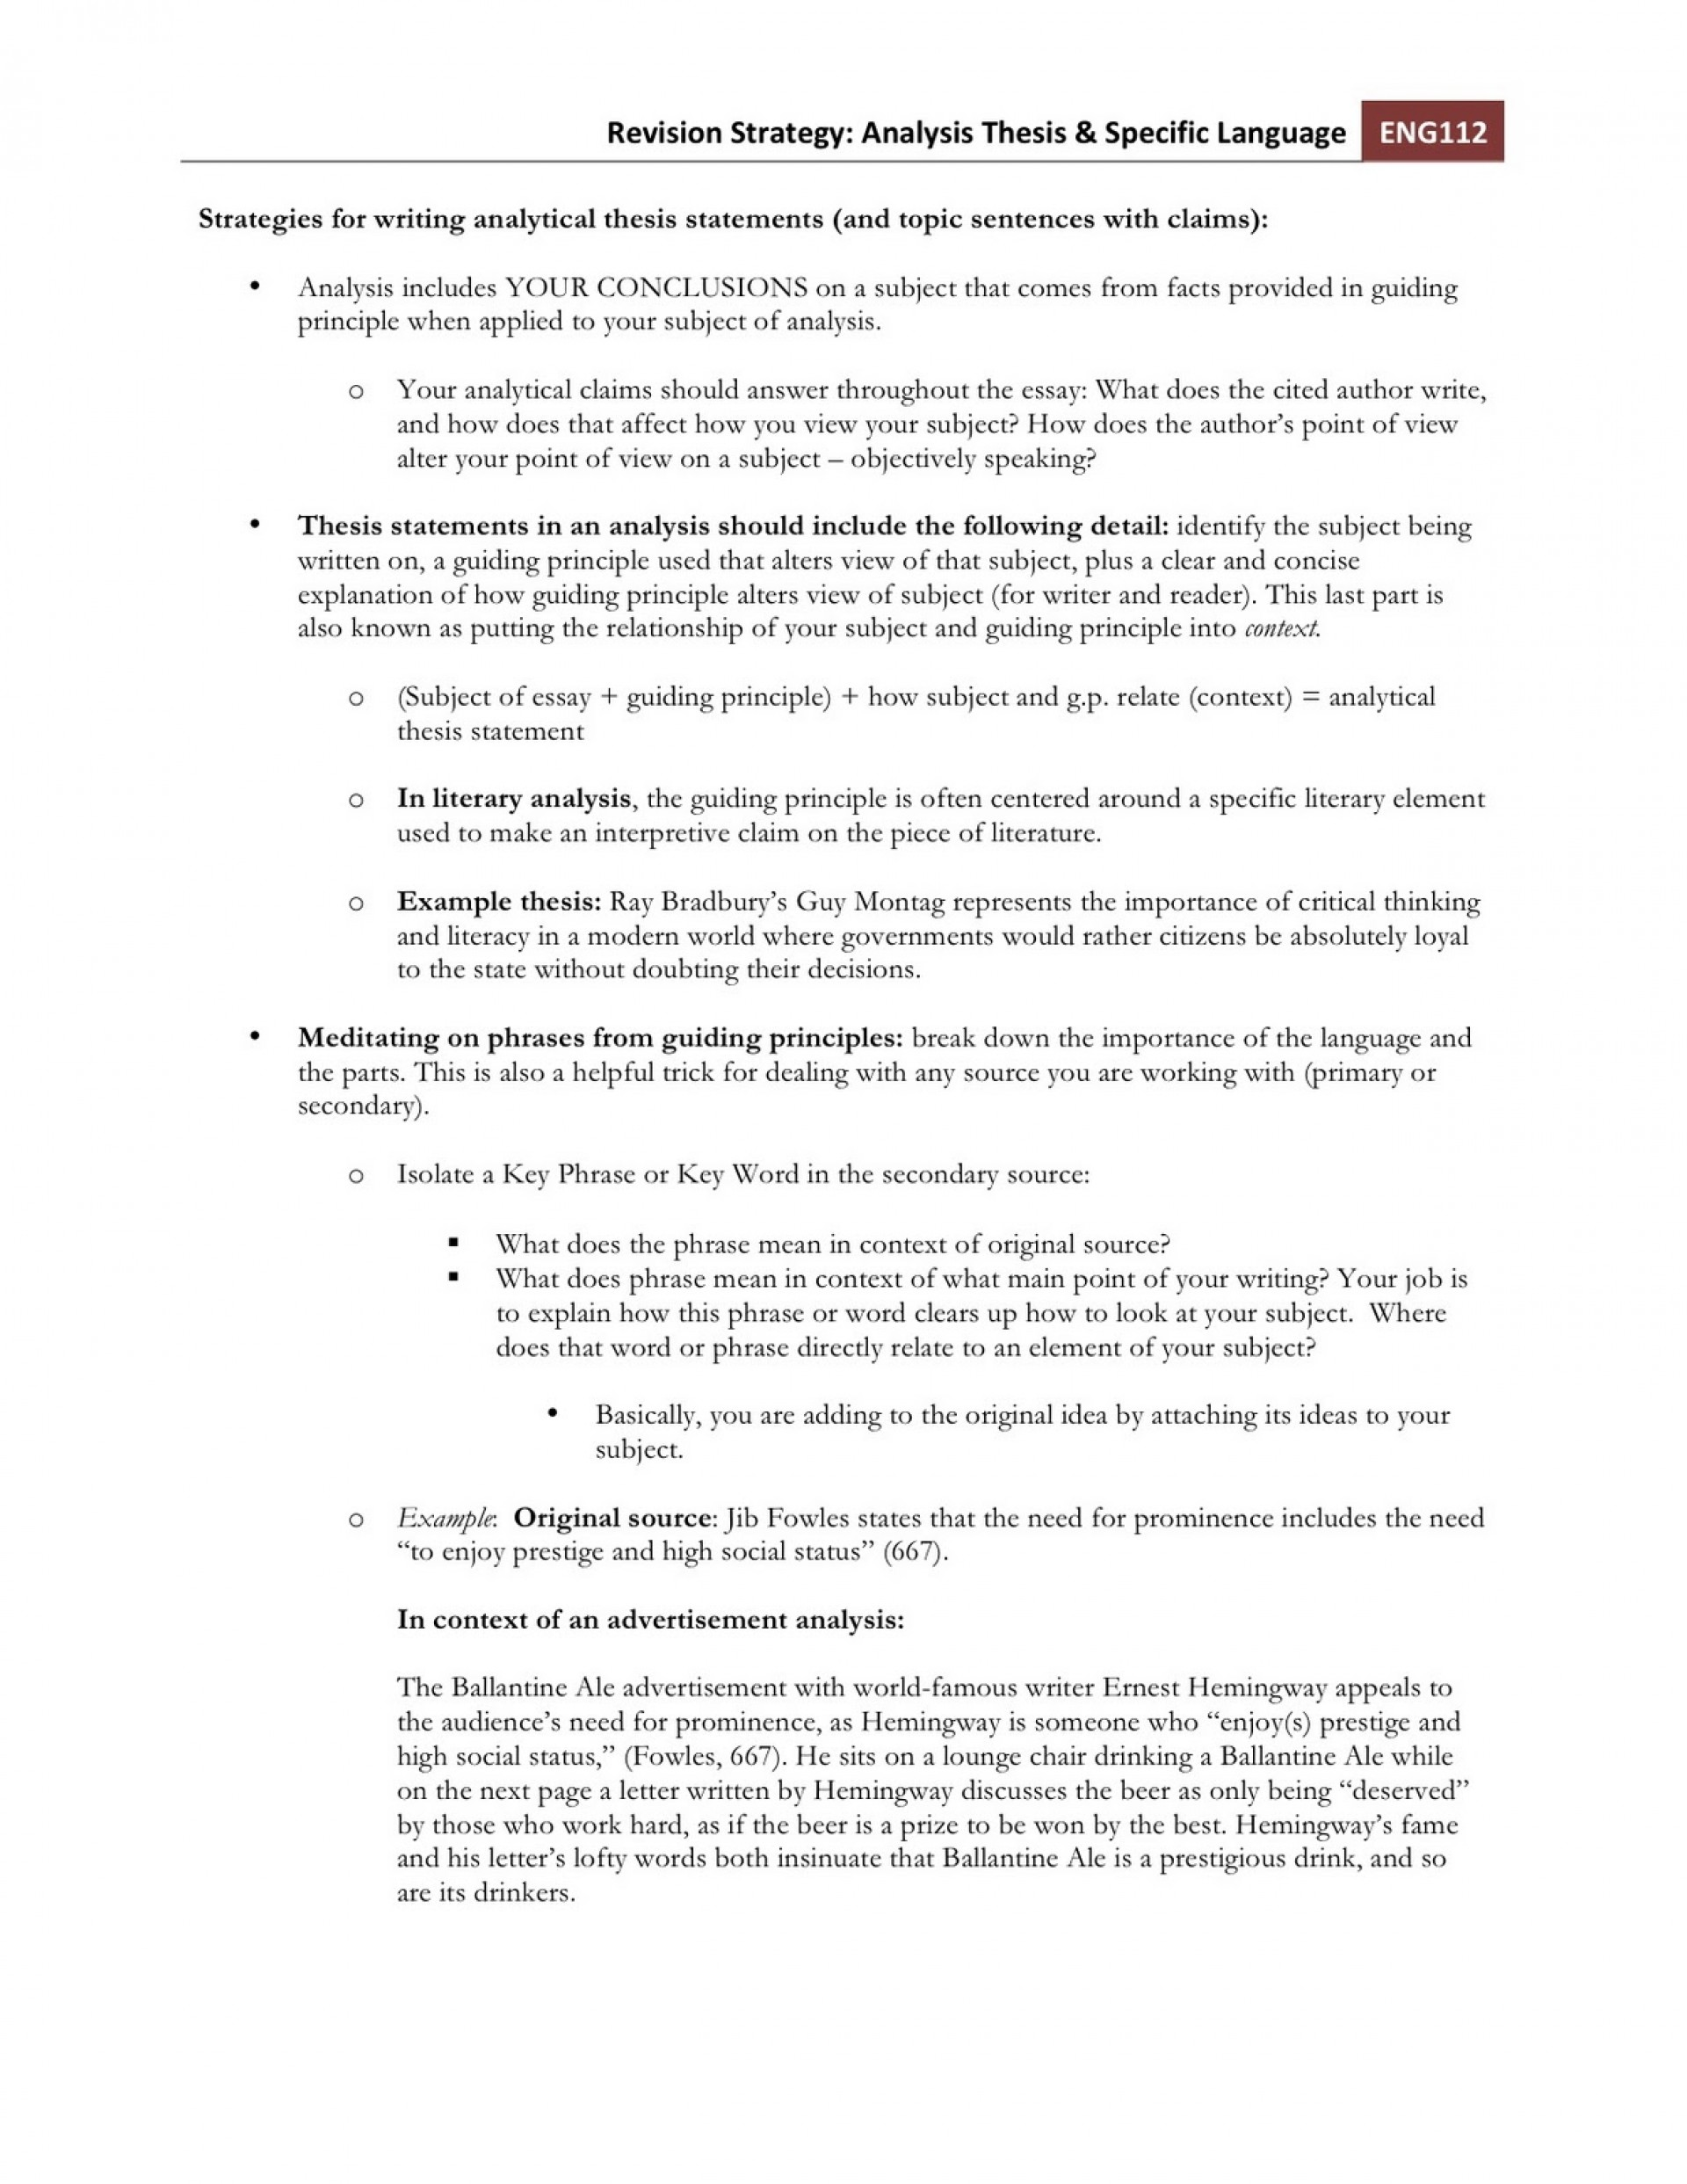 020 Thesis Essay Example Stupendous Antithesis Synthesis Structure Driven Template Paper Outline 1920